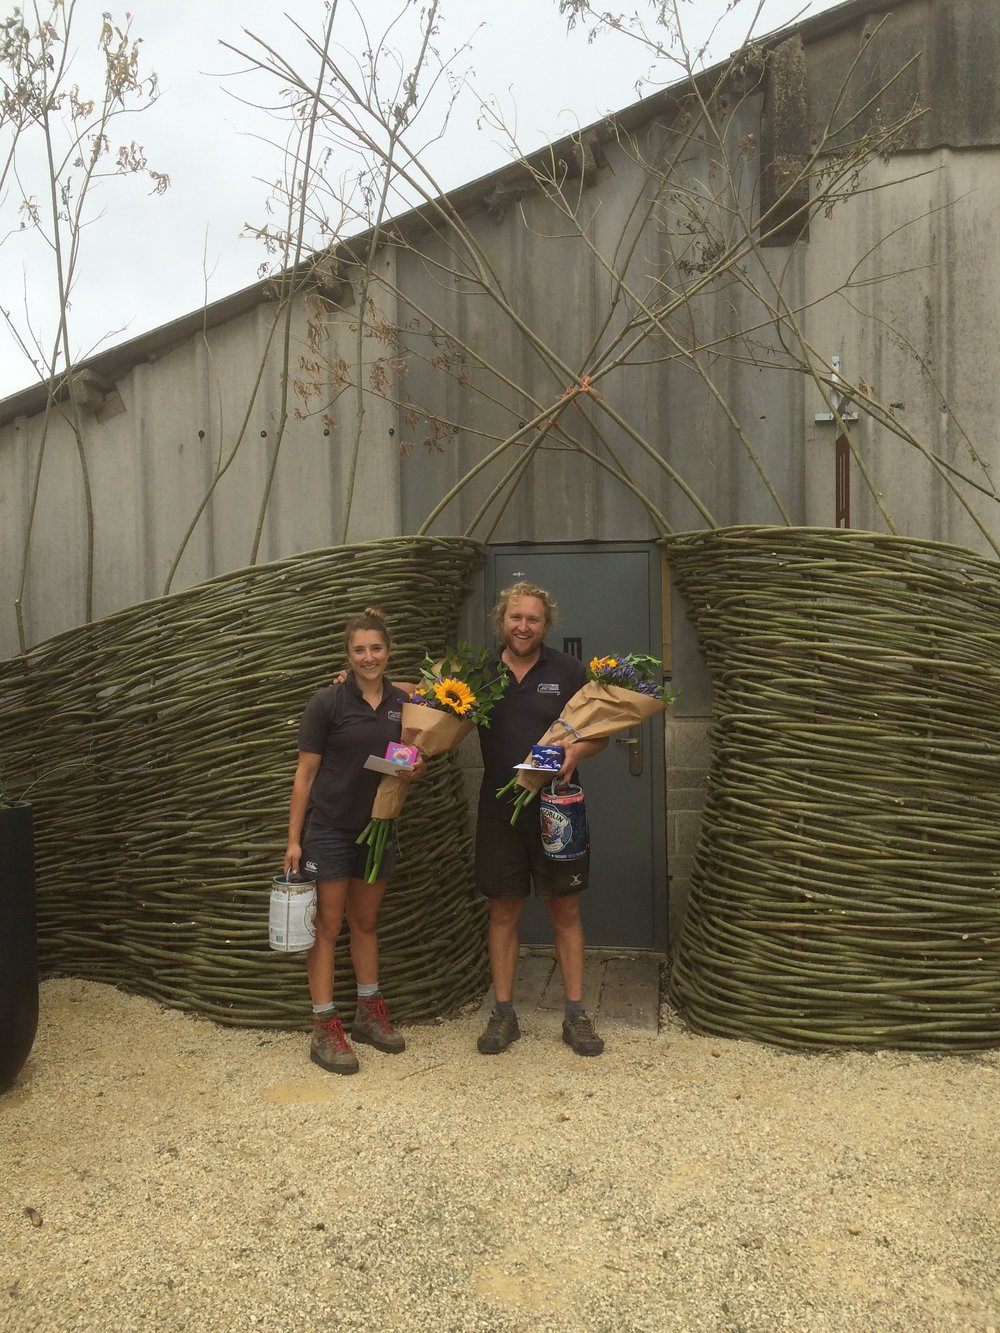 Woven willow sculptural entranceway